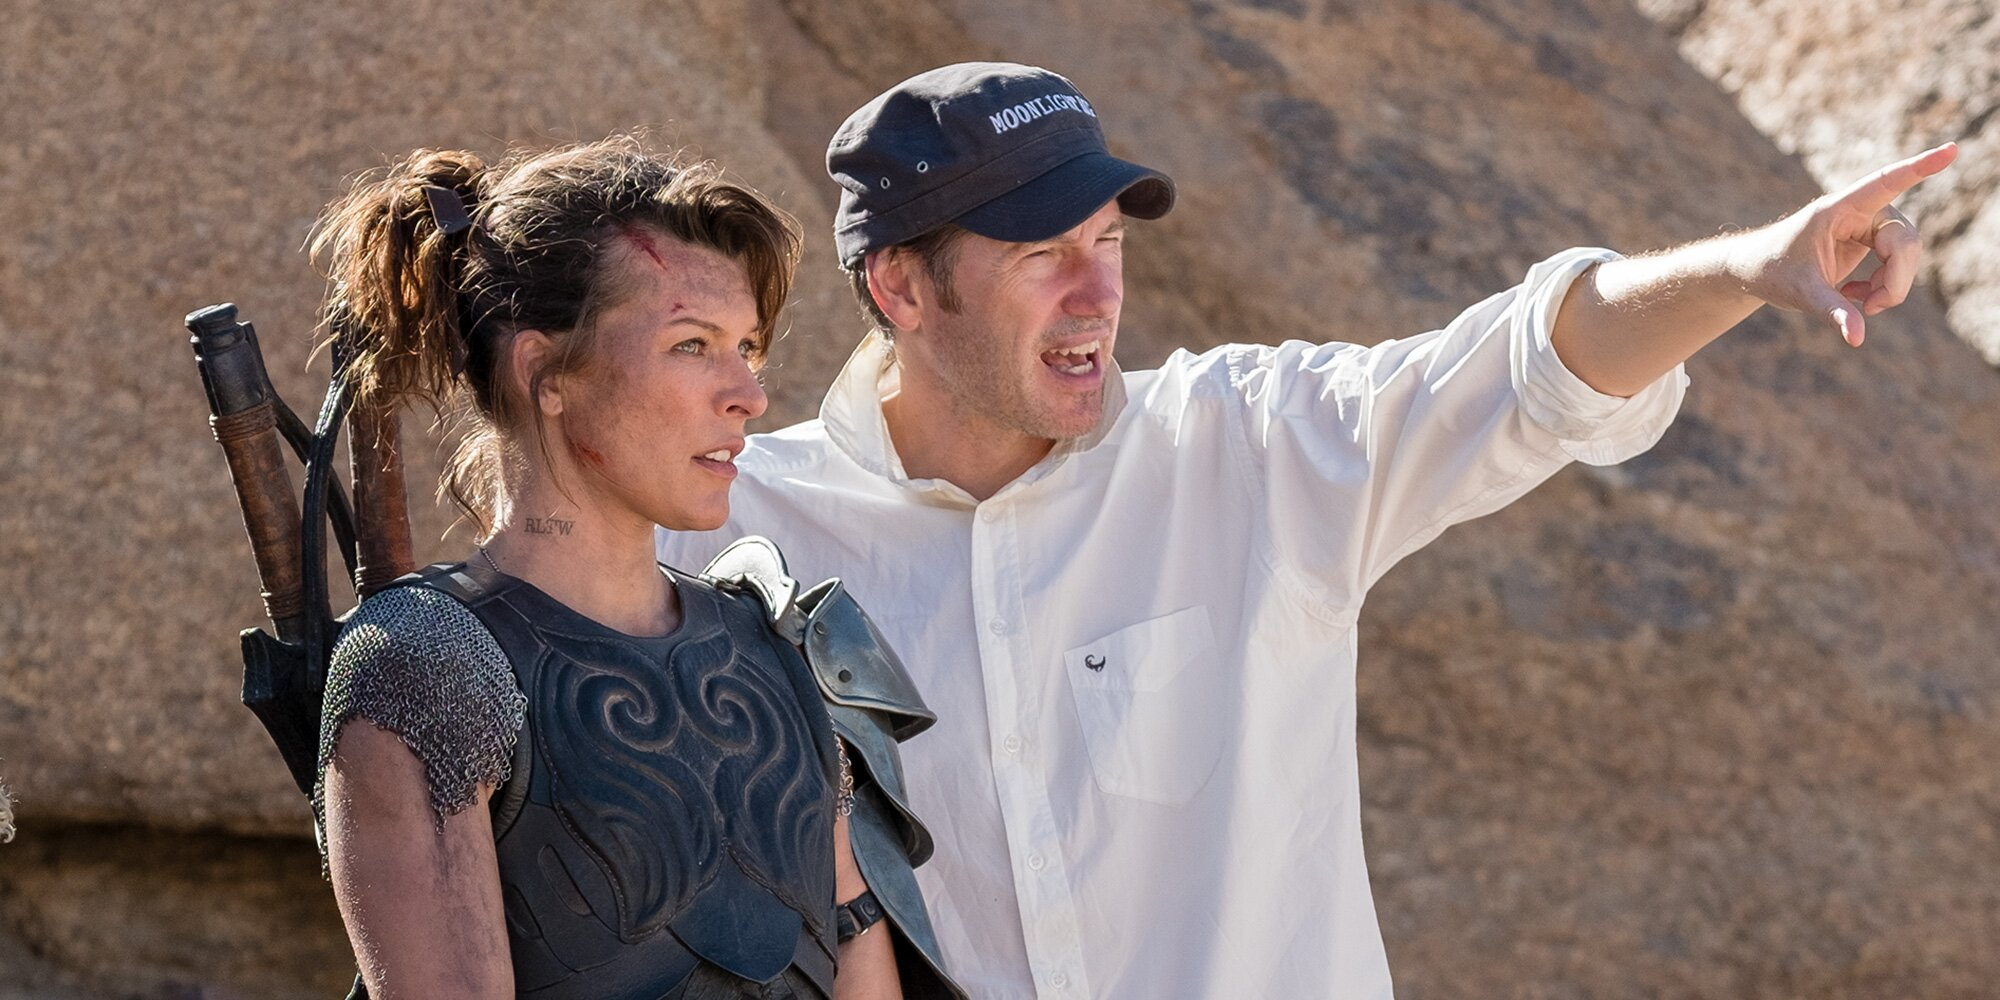 Next Milla Jovovich, Paul W.S. Anderson film will tackle fantasy tale from Game of Thrones author.jpg